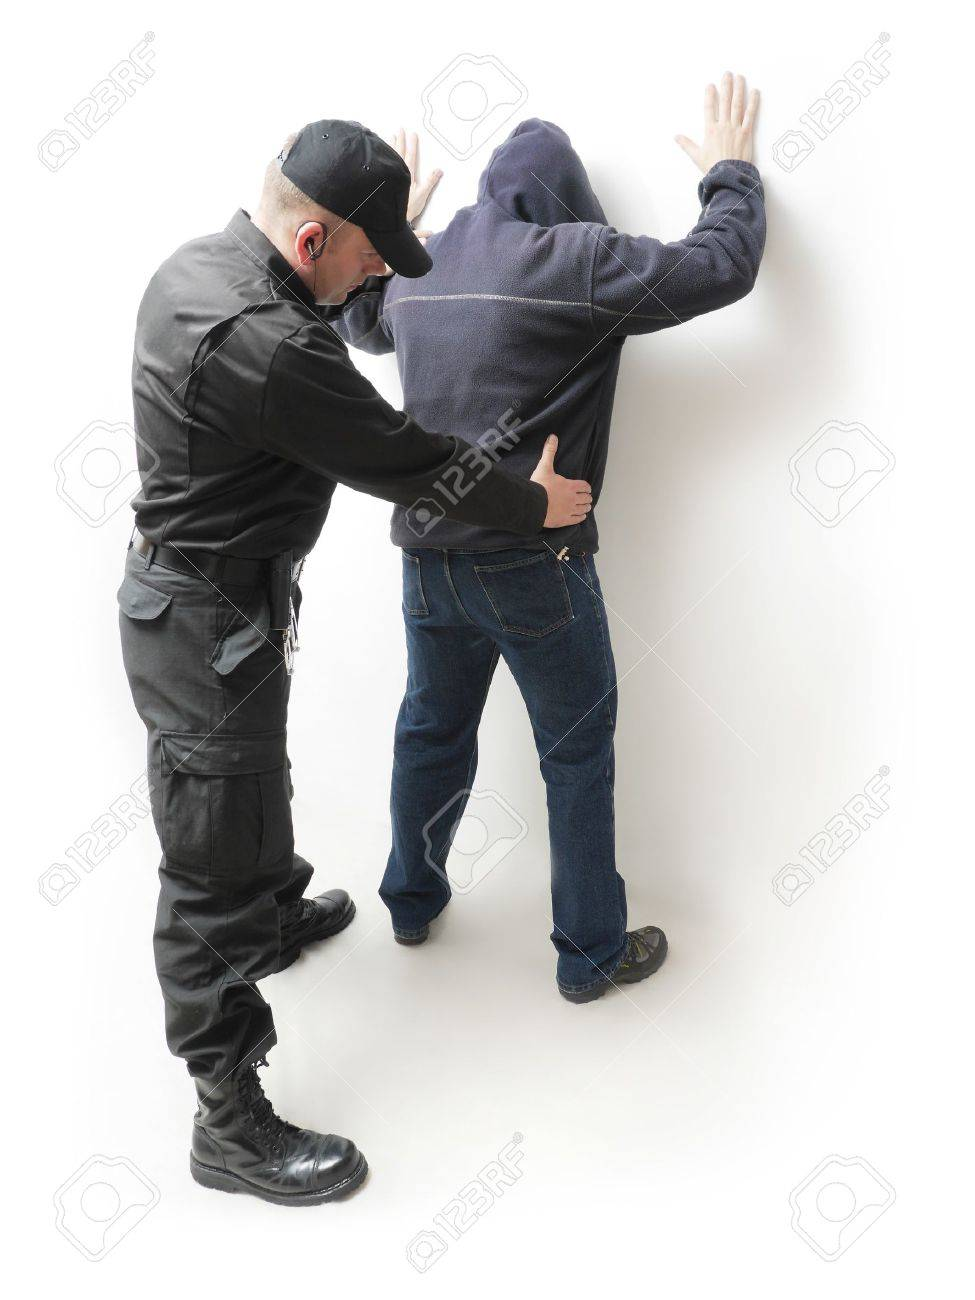 Man being searched by a policeman in black uniform Stock Photo - 25987963